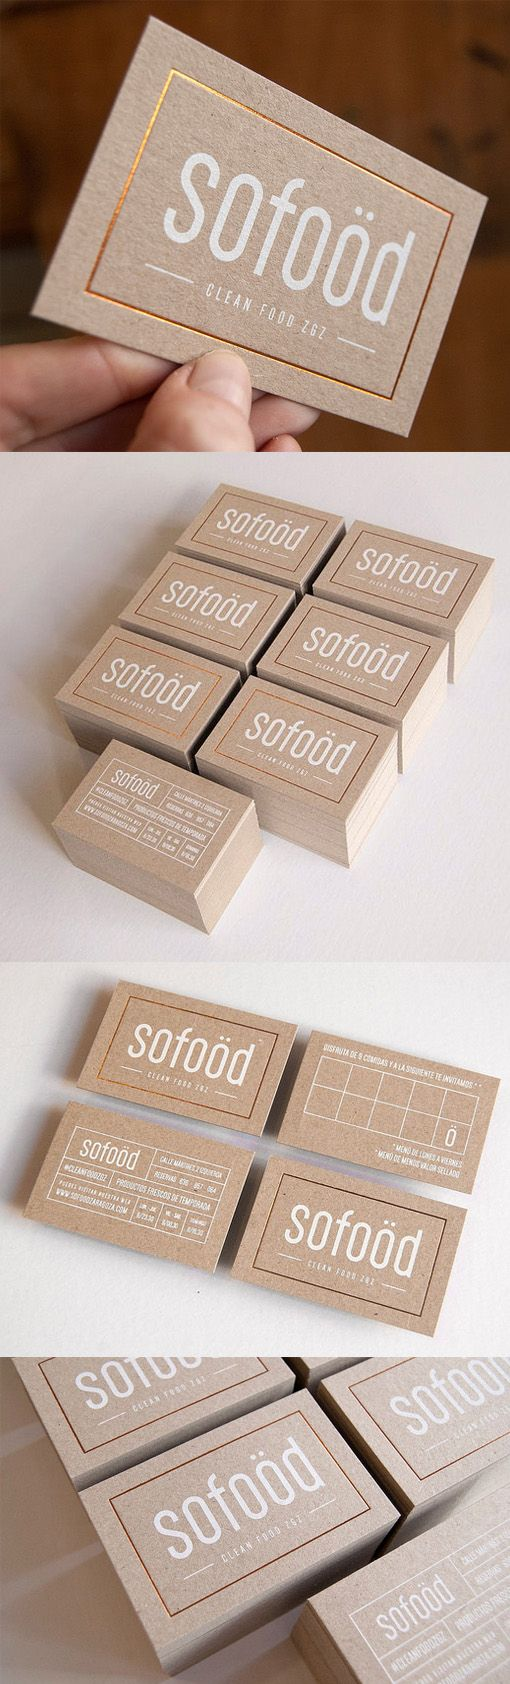 307 Best Business Card Images On Pinterest Business Card Design